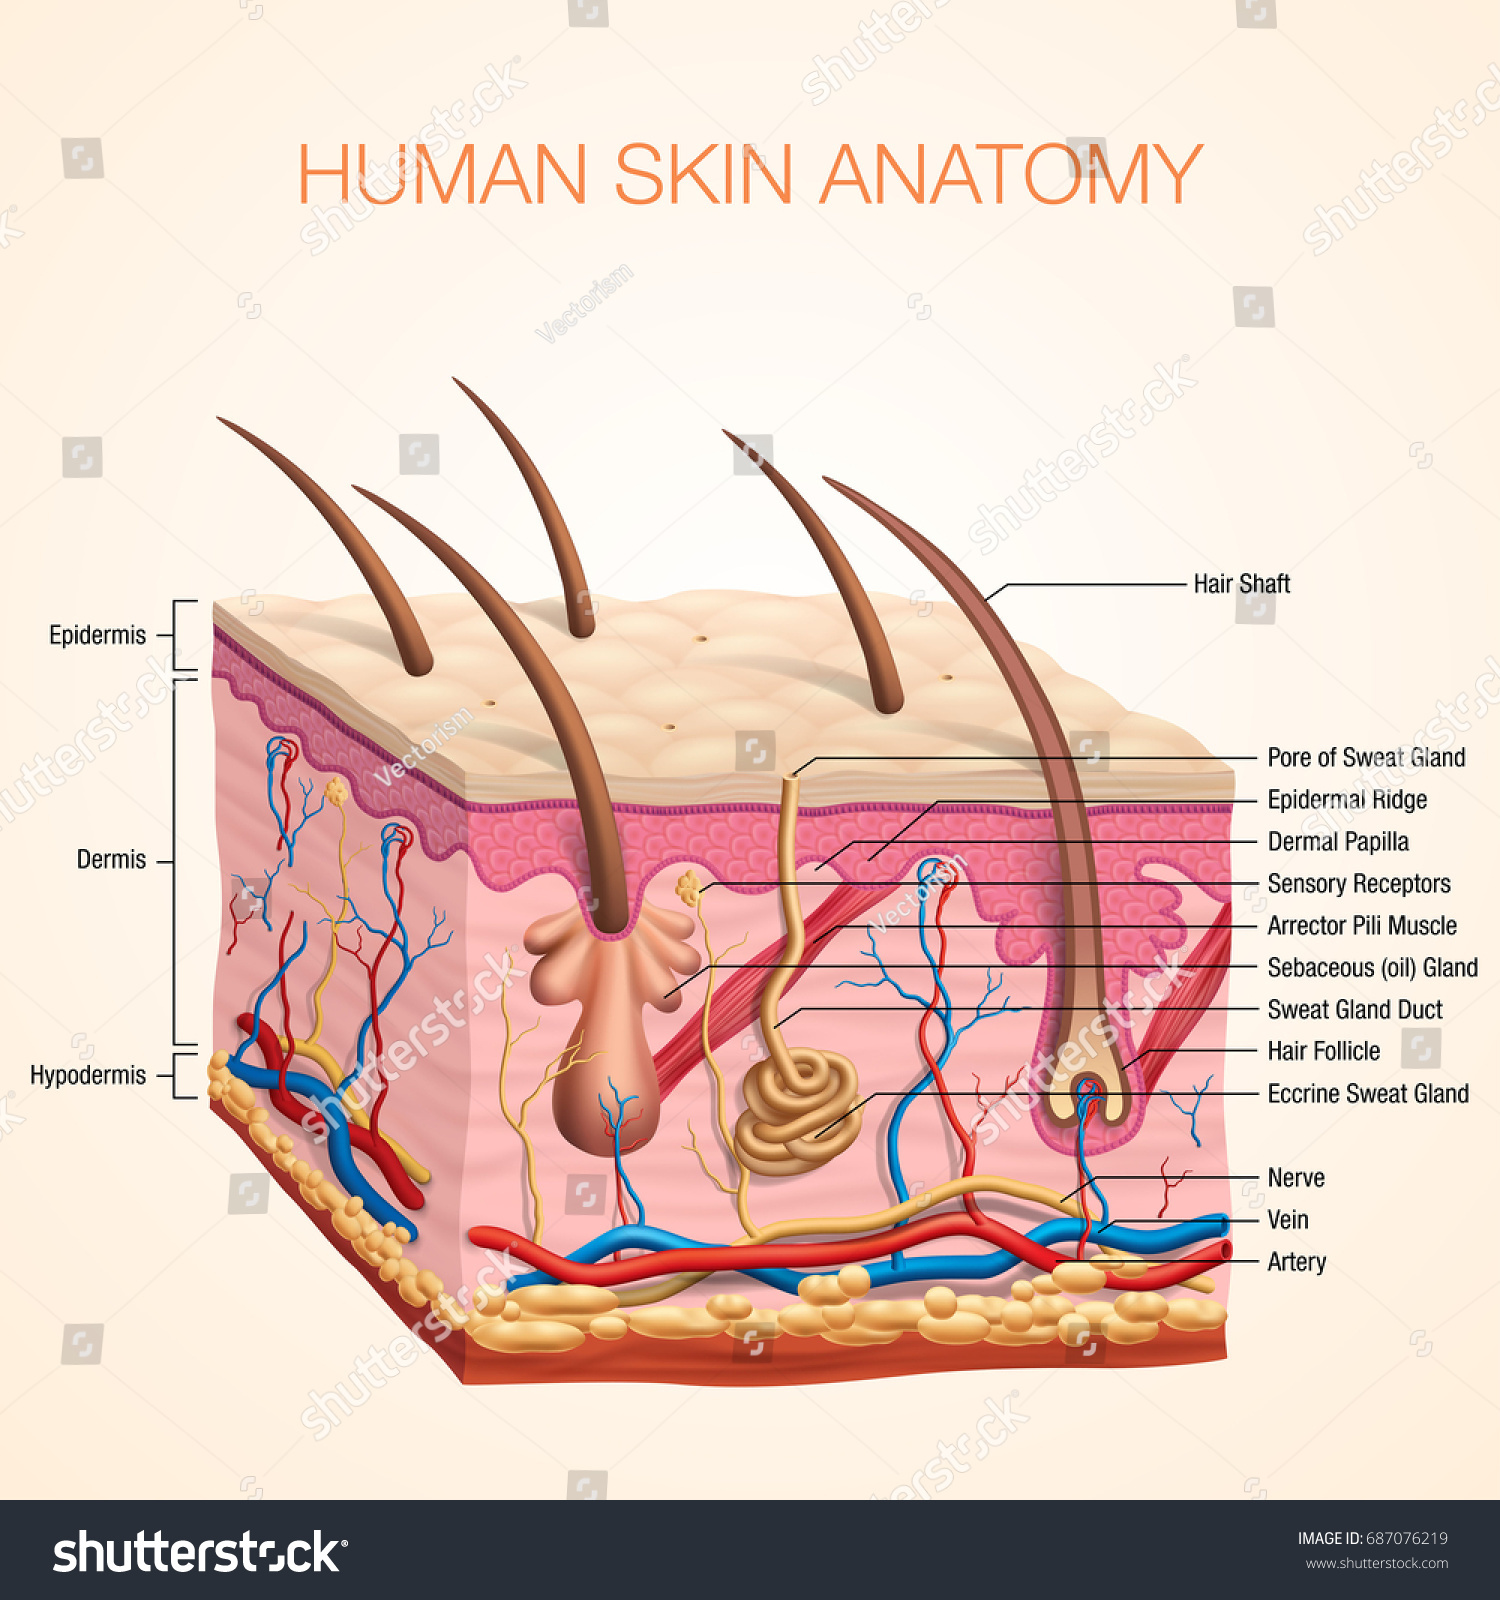 Human Body Skin Anatomy Vector Illustration Stock Vector (Royalty ...